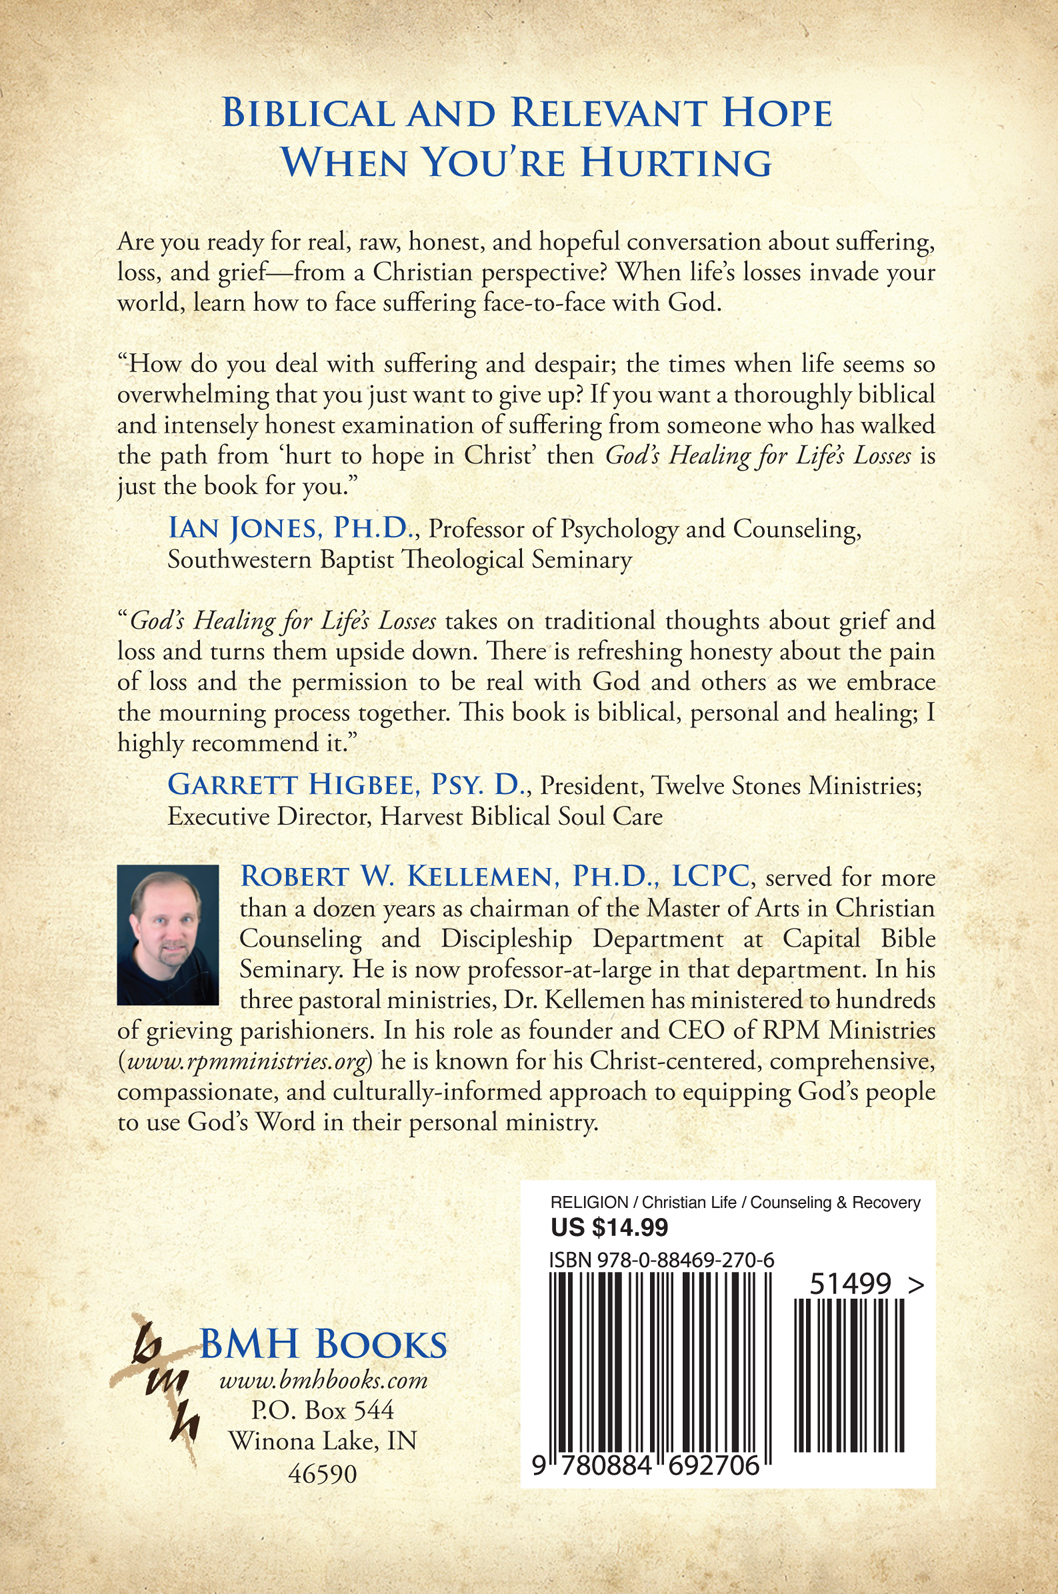 Quotes Of Note About Gods Healing For Lifes Losses Part 2 Rpm